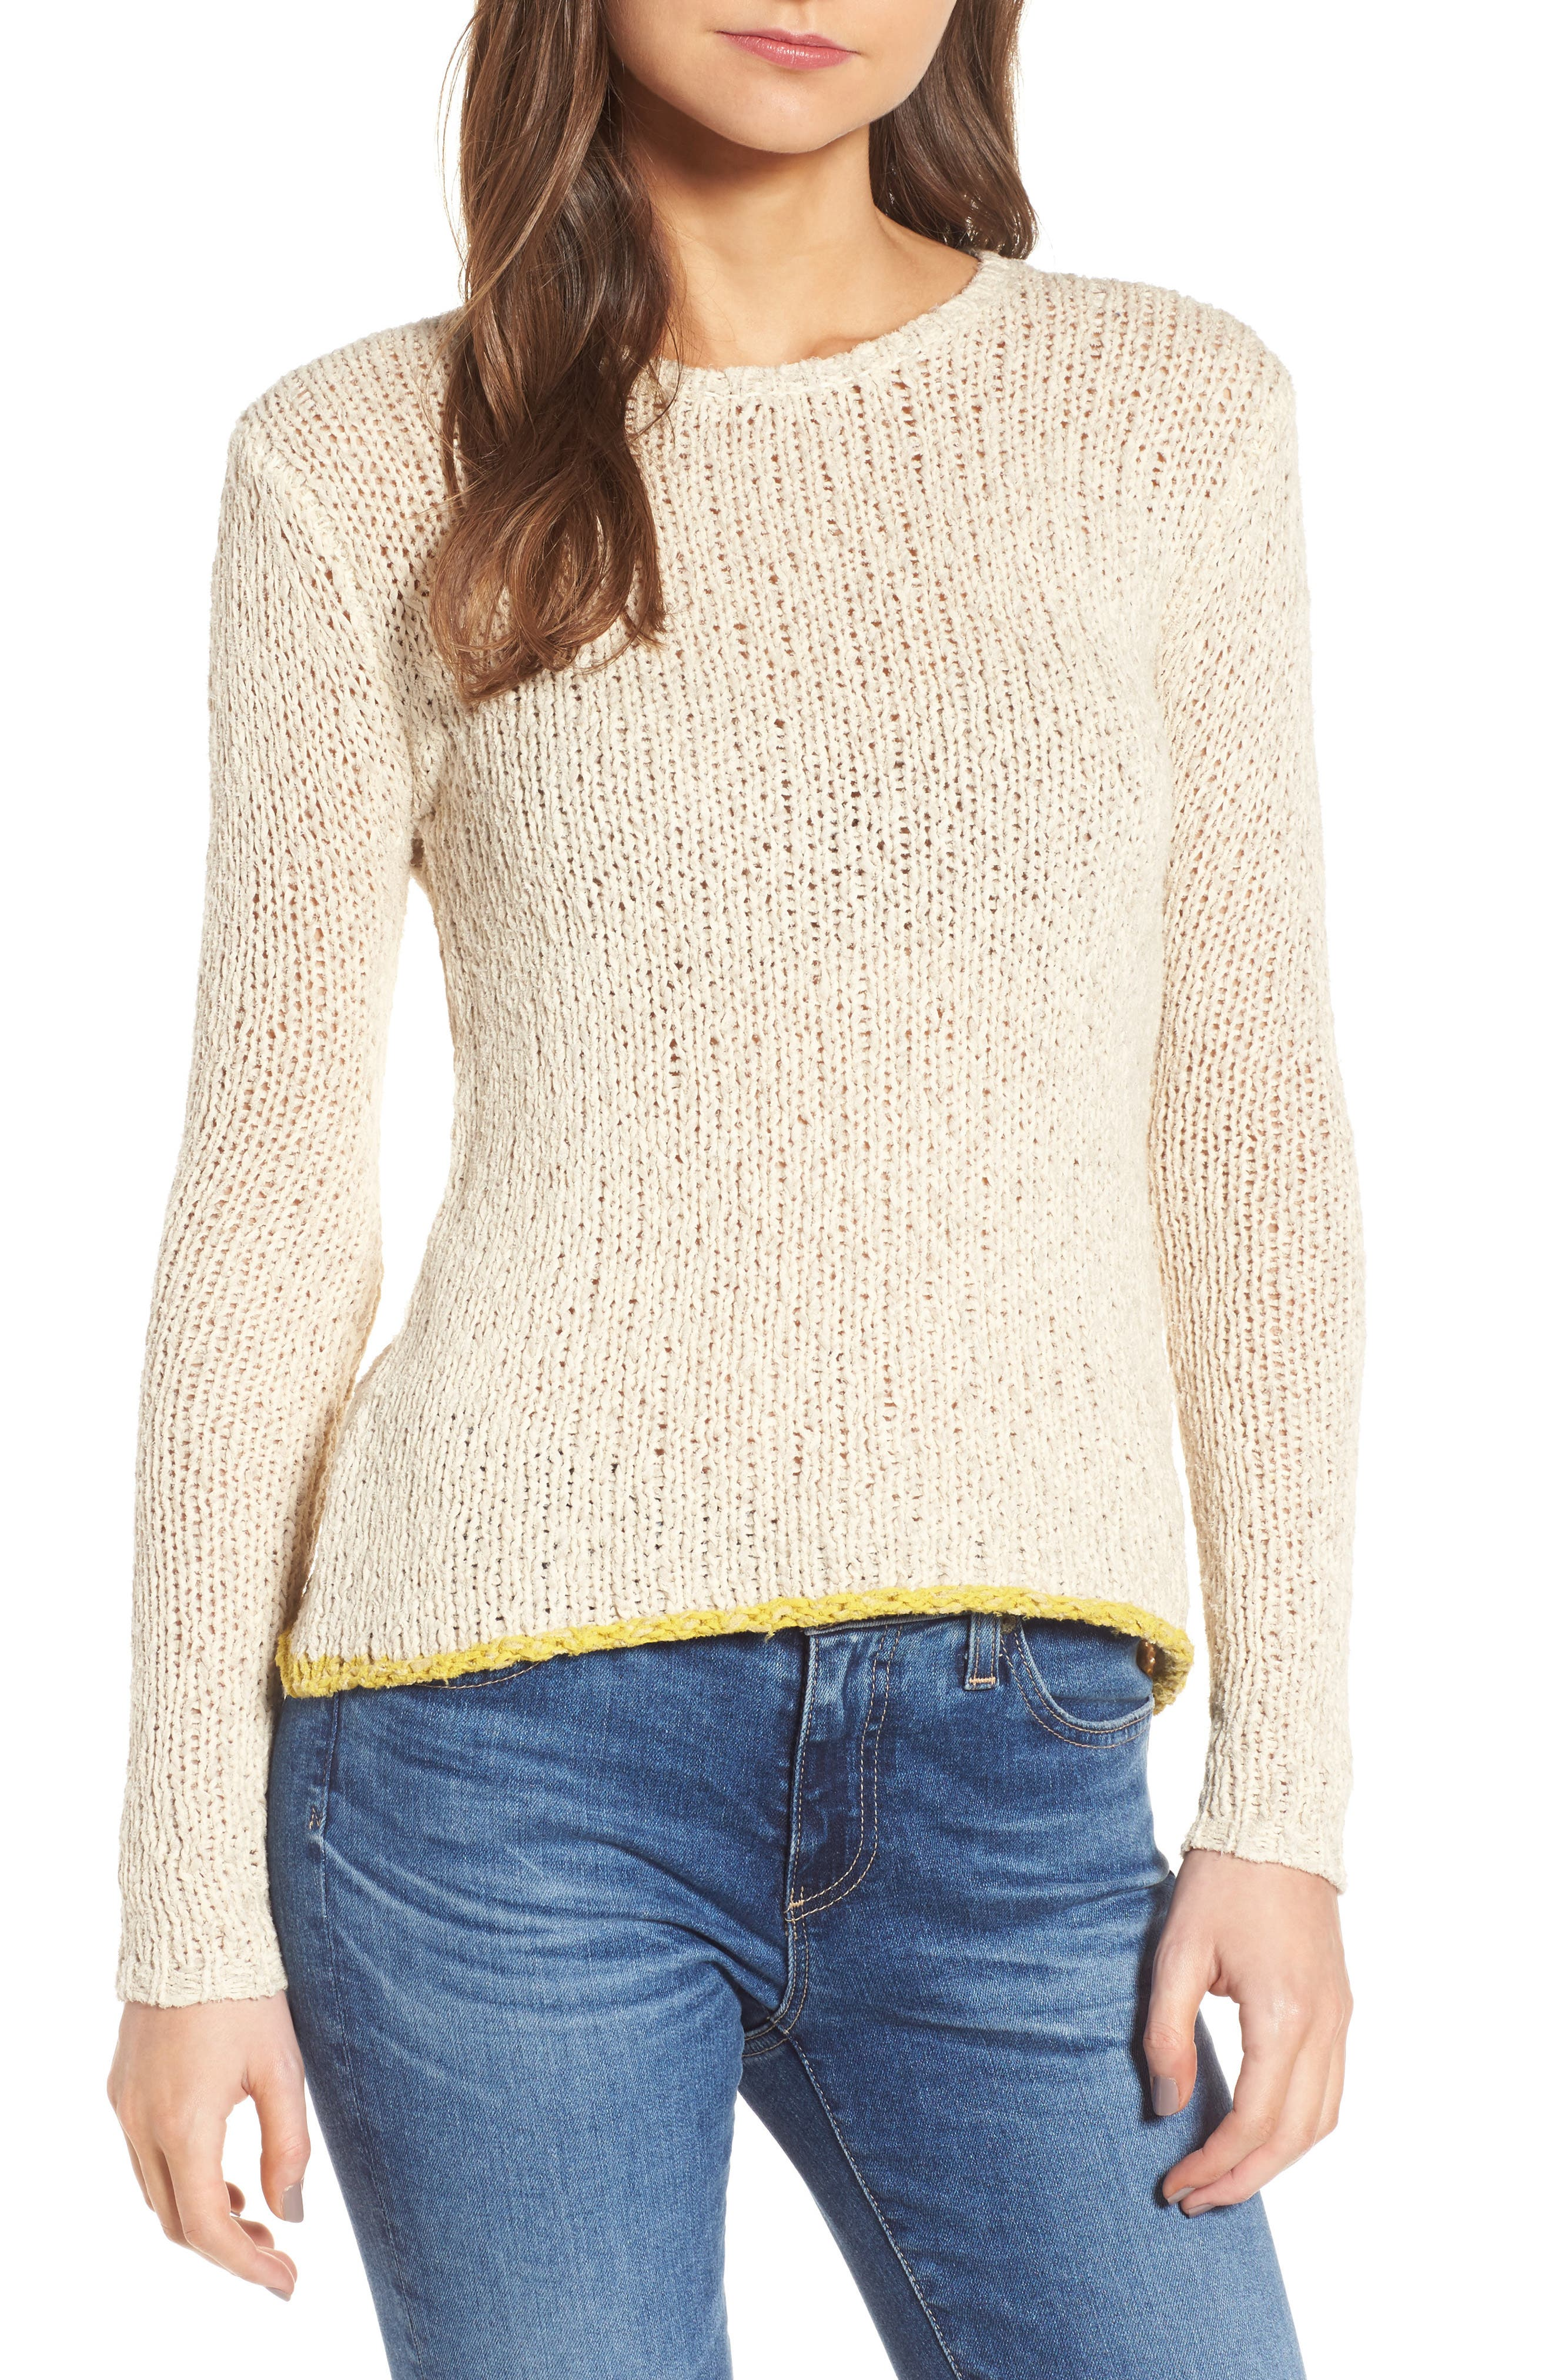 Main Image - James Perse Open Stitch Sweater